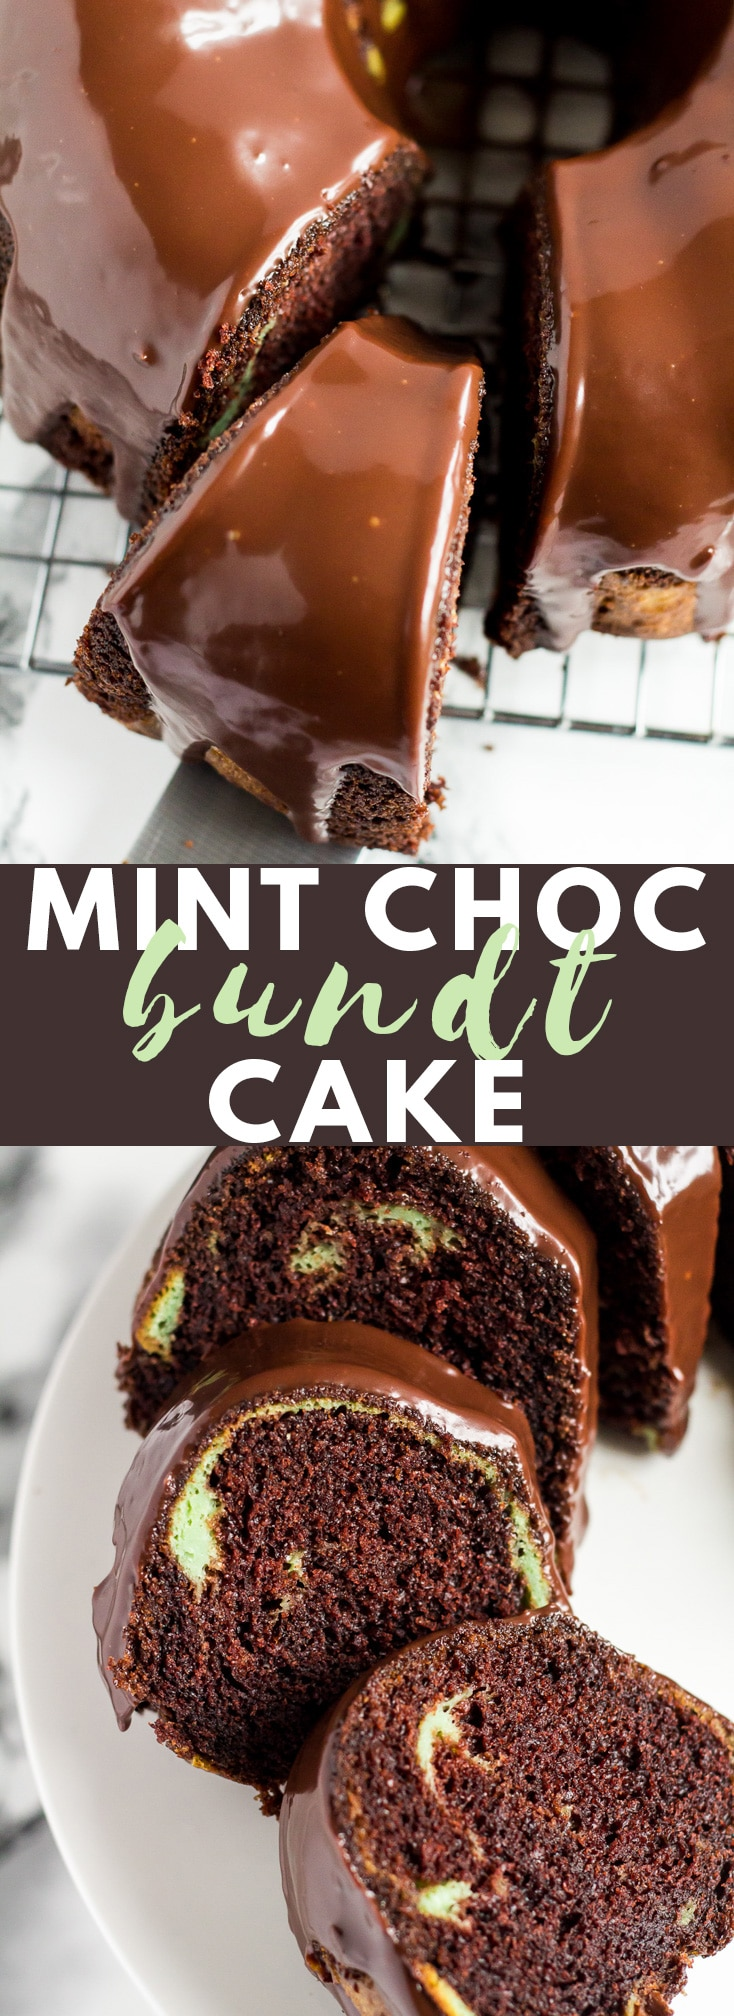 Mint Chocolate Bundt Cake - Deliciously moist and fluffy chocolate bundt cake infused with mint, and drizzled with a creamy chocolate ganache!